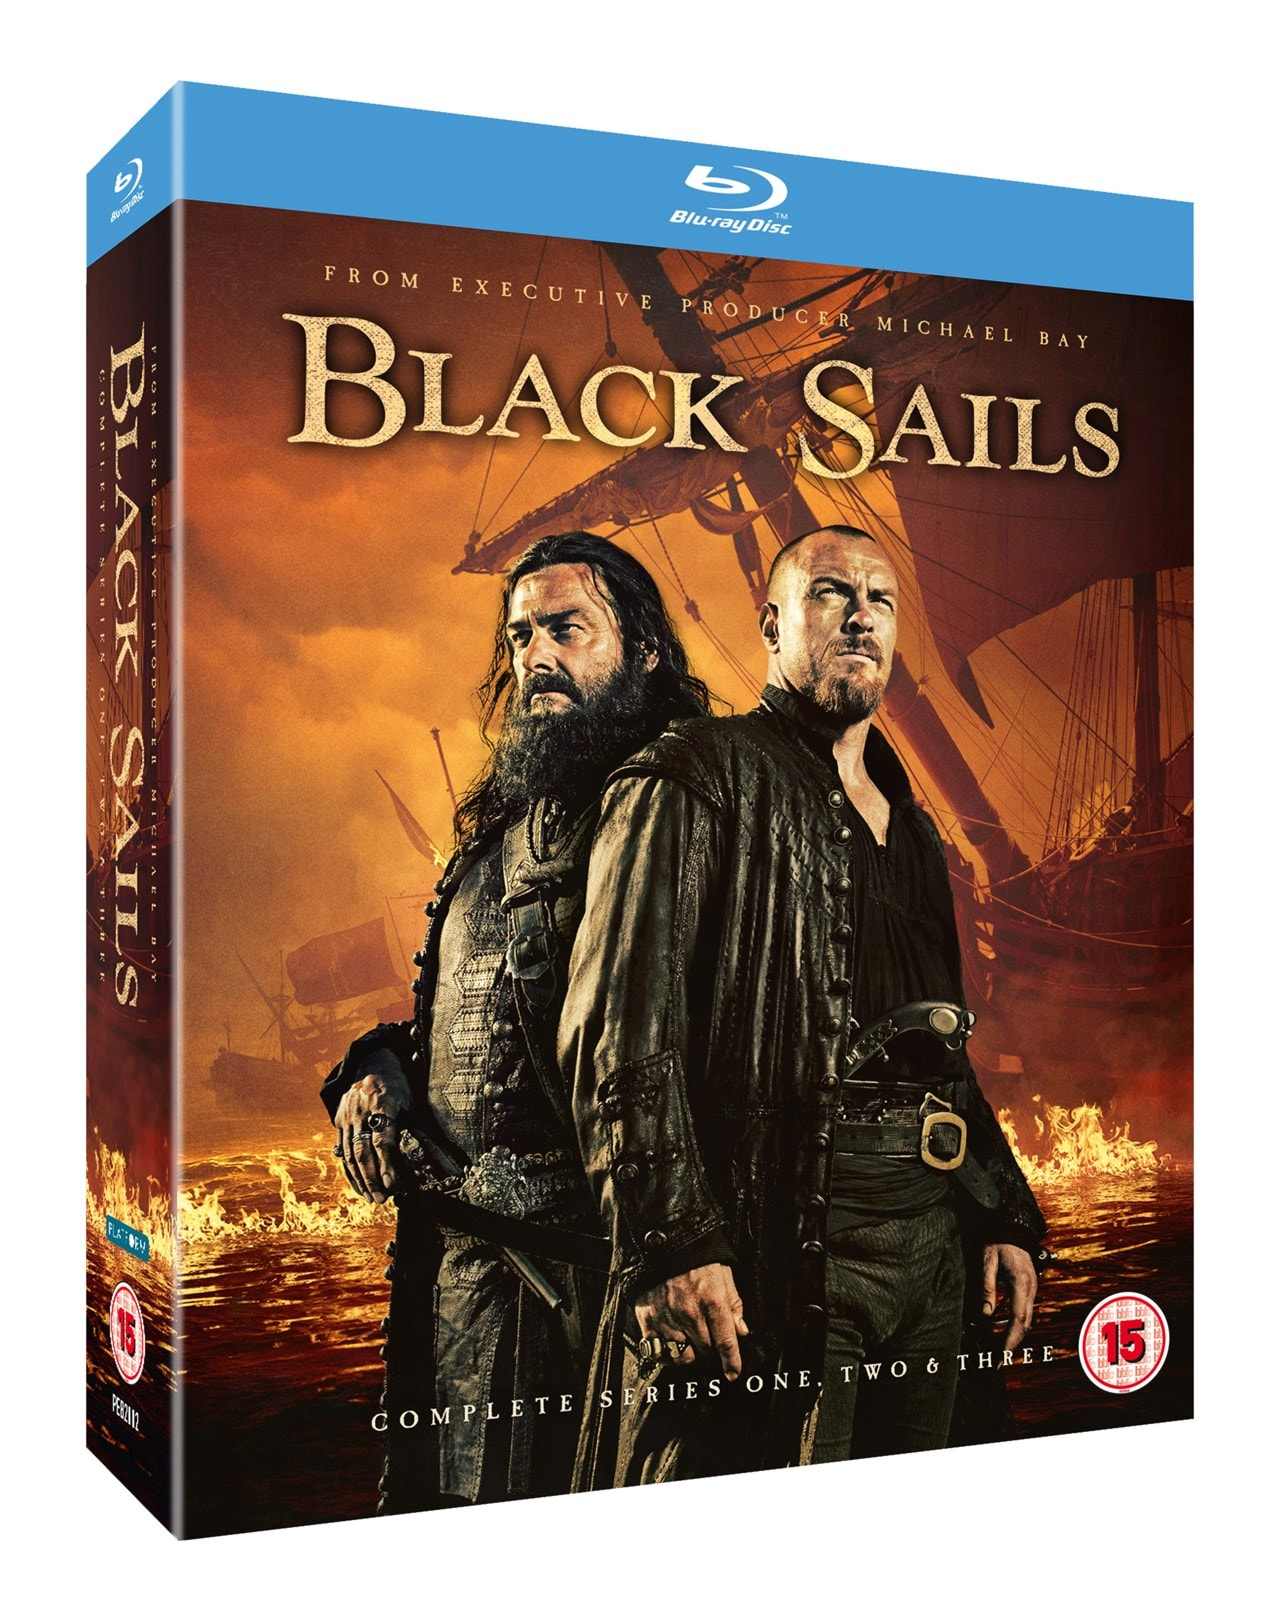 Black Sails: Complete Series One, Two & Three - 2